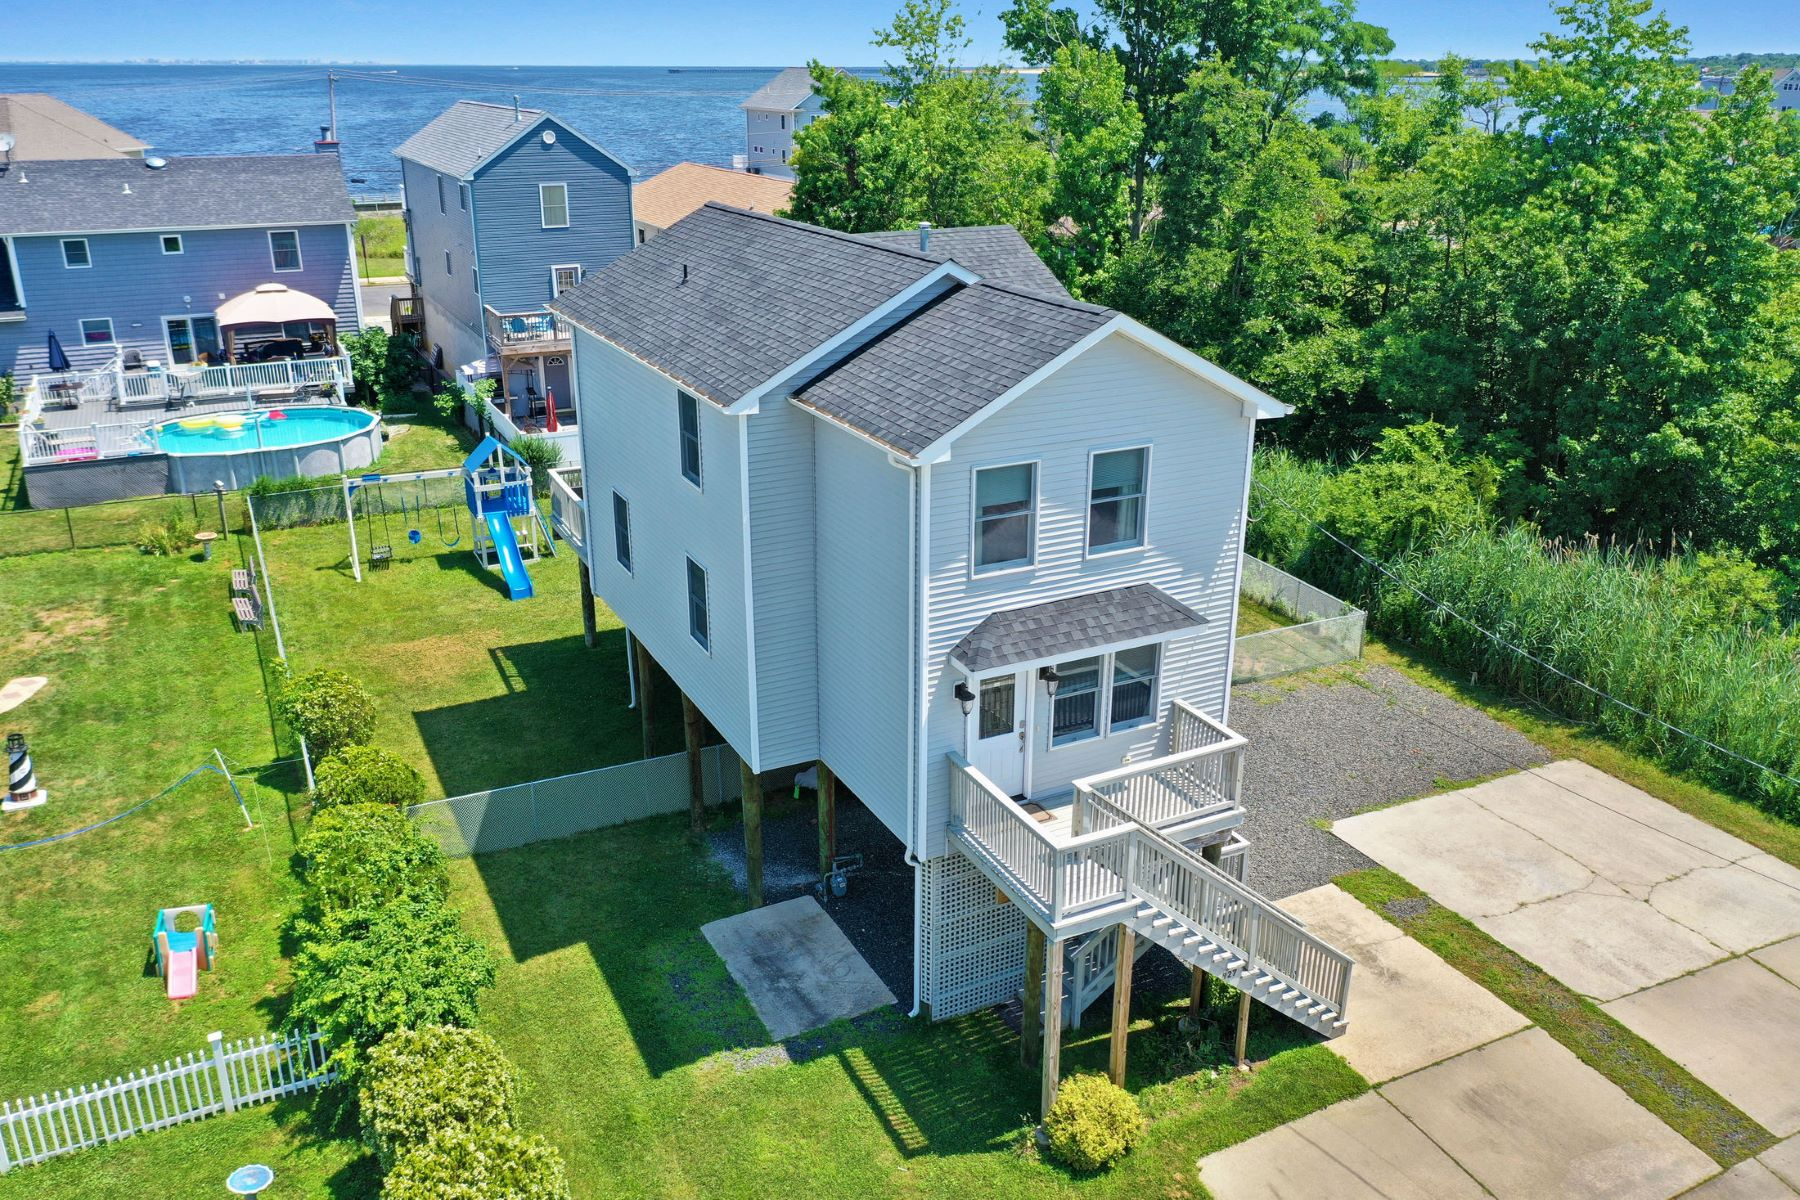 Single Family Homes for Sale at Oversized Yard 927 2nd Street, Union Beach, New Jersey 07735 United States